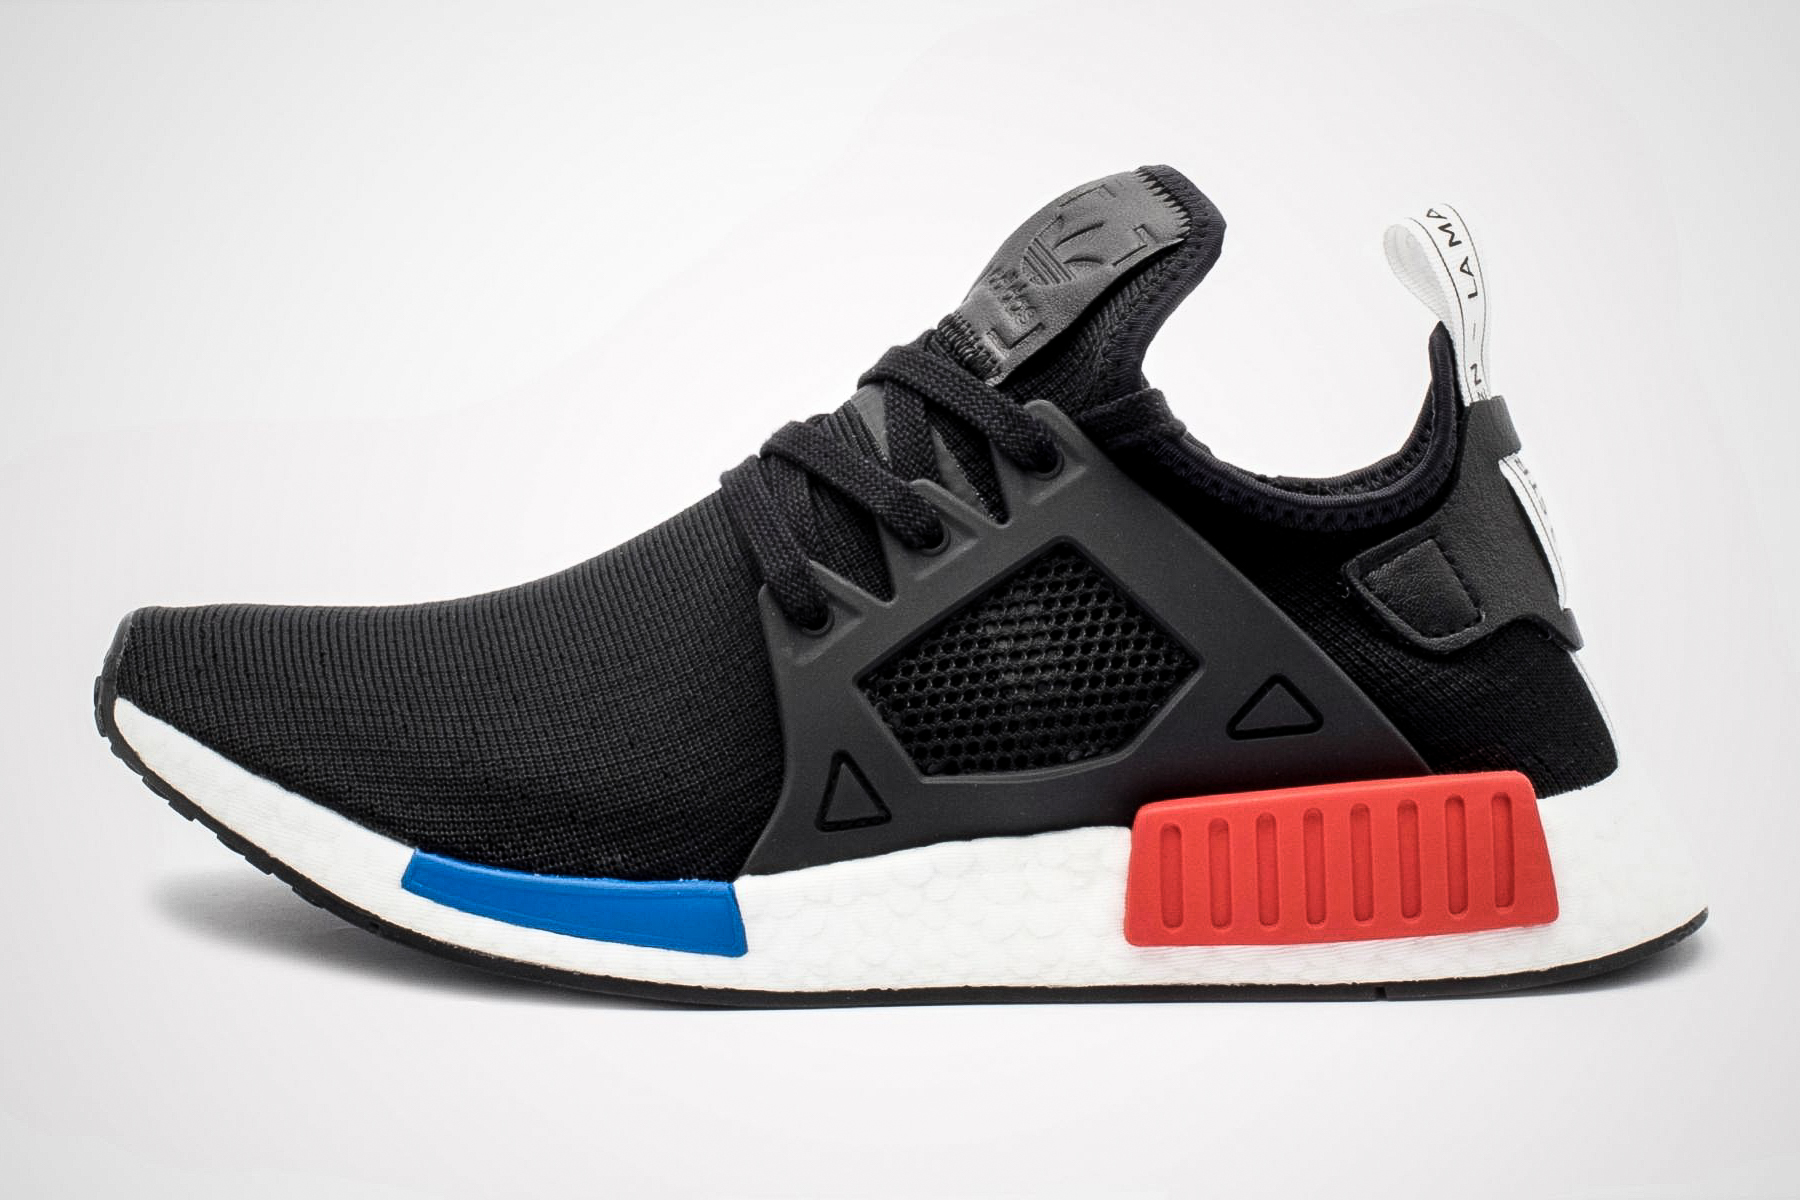 competitive price ad1f2 a1c48 adidas Releases the NMD XR 1 in the OG Colorway